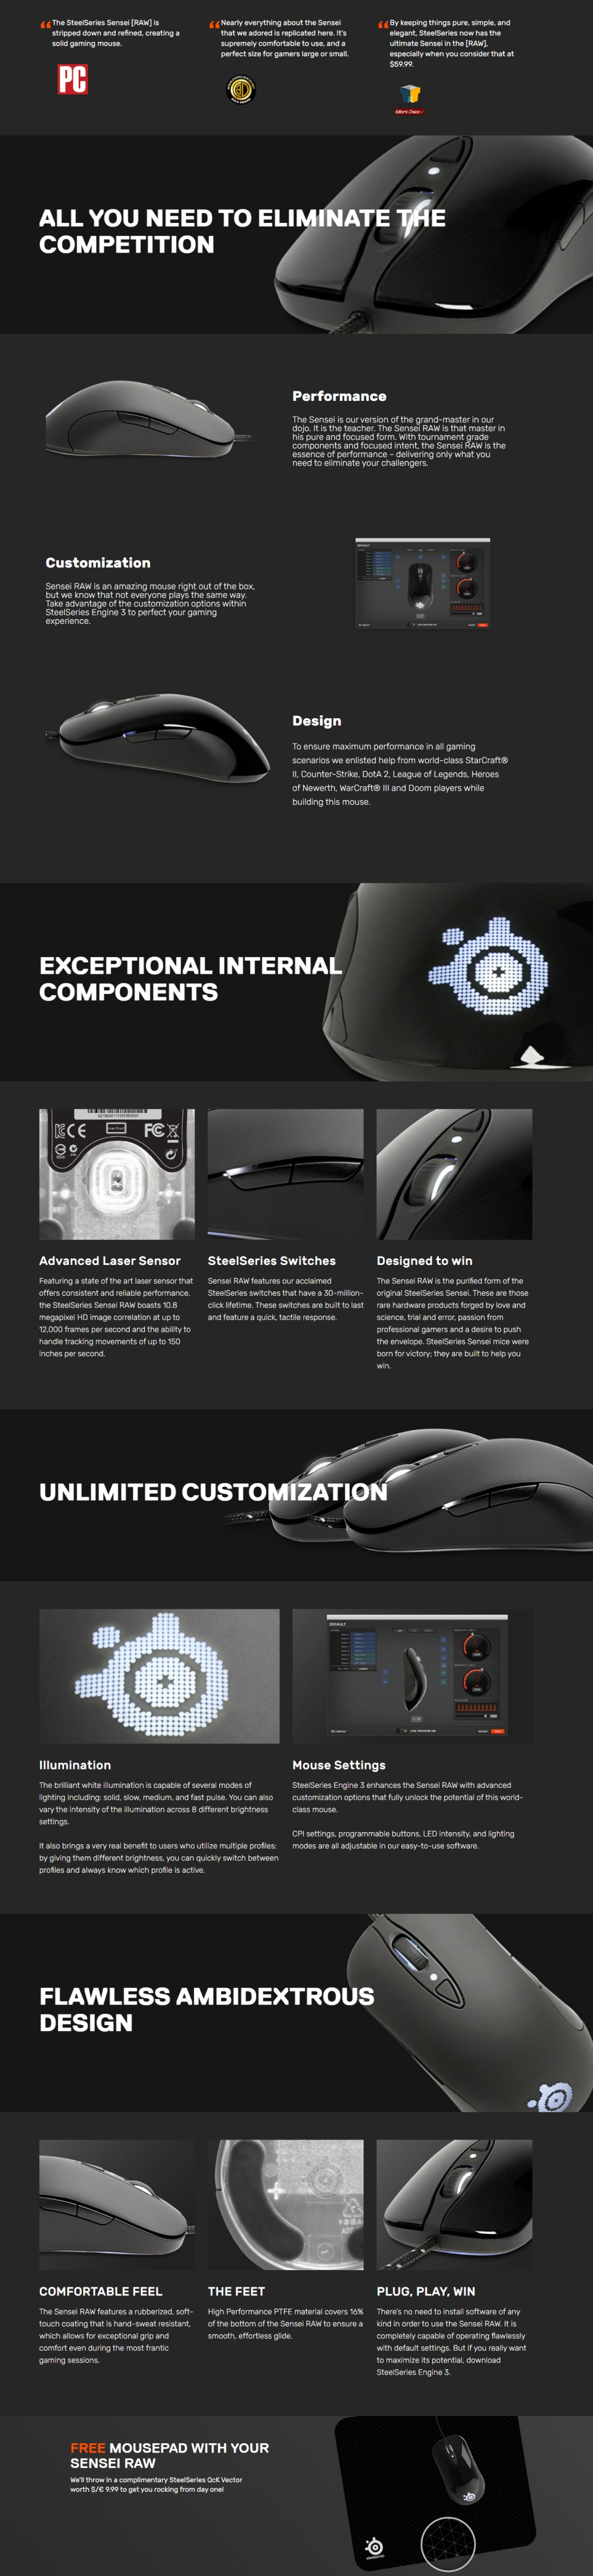 SteelSeries Sensei [RAW] Laser Gaming Mouse Frost Blue (Glossy White)  Singapore